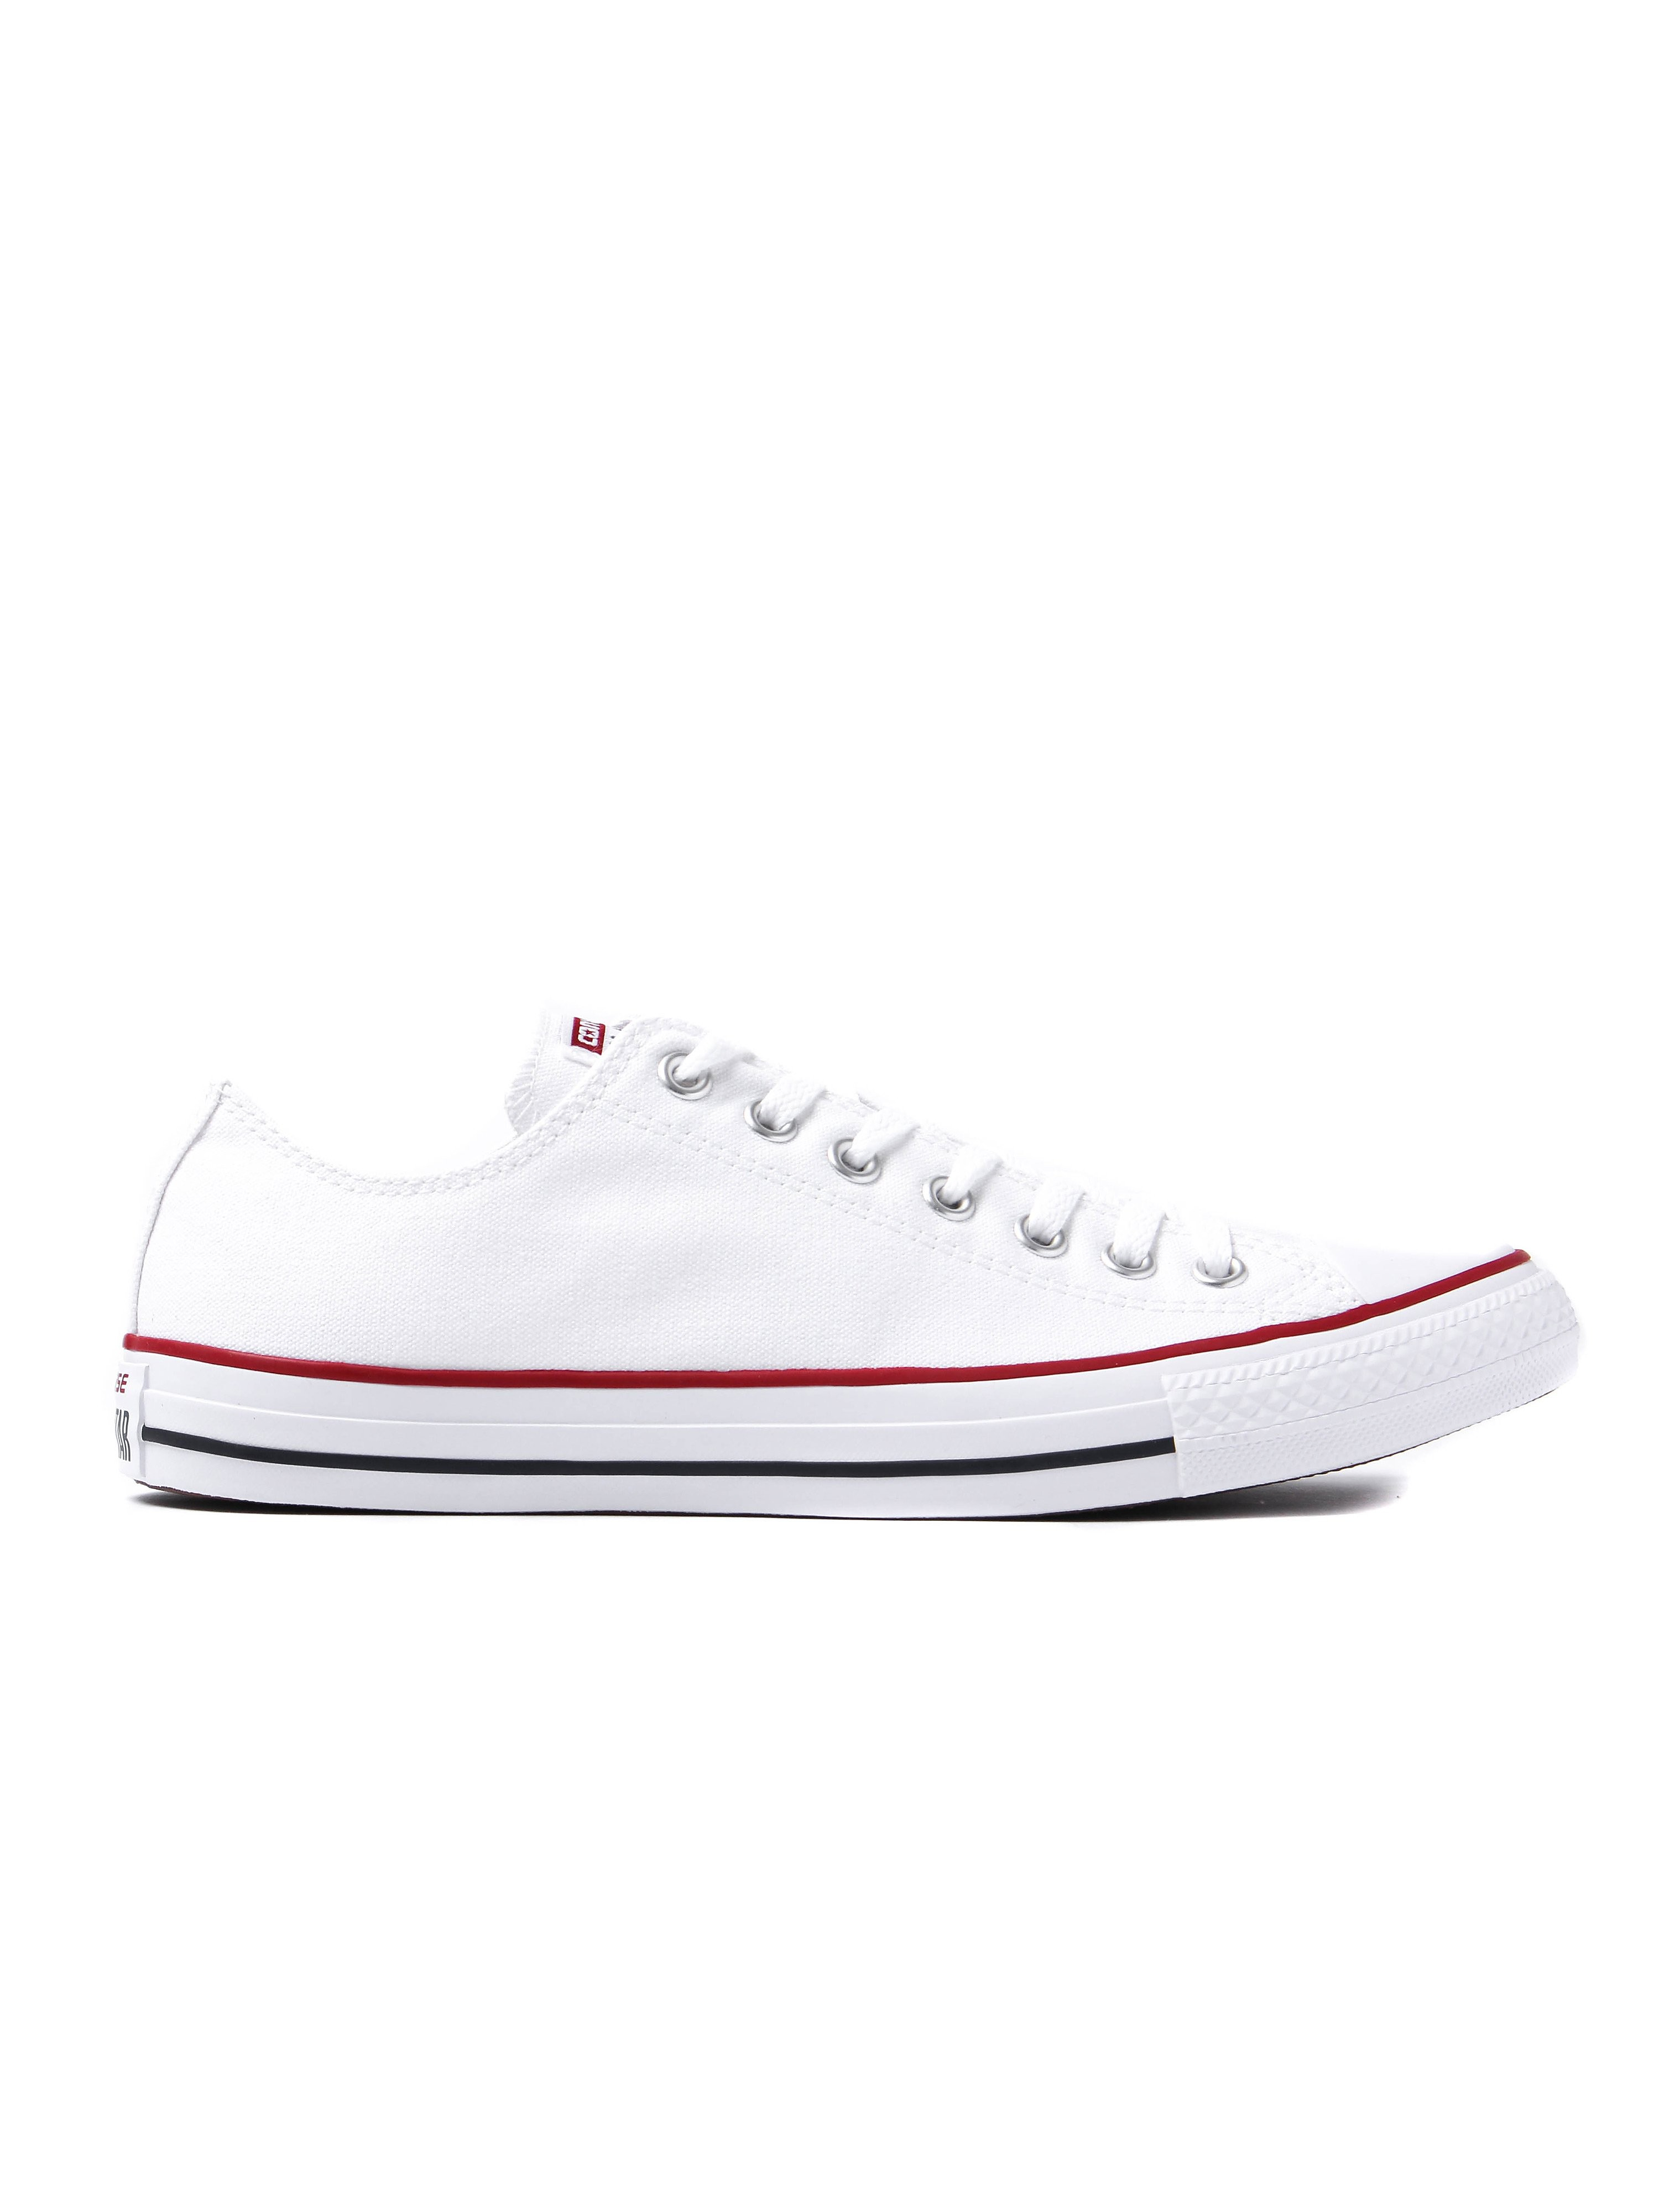 Converse Women's Chuck Taylor All Star OX Trainers - Optical White